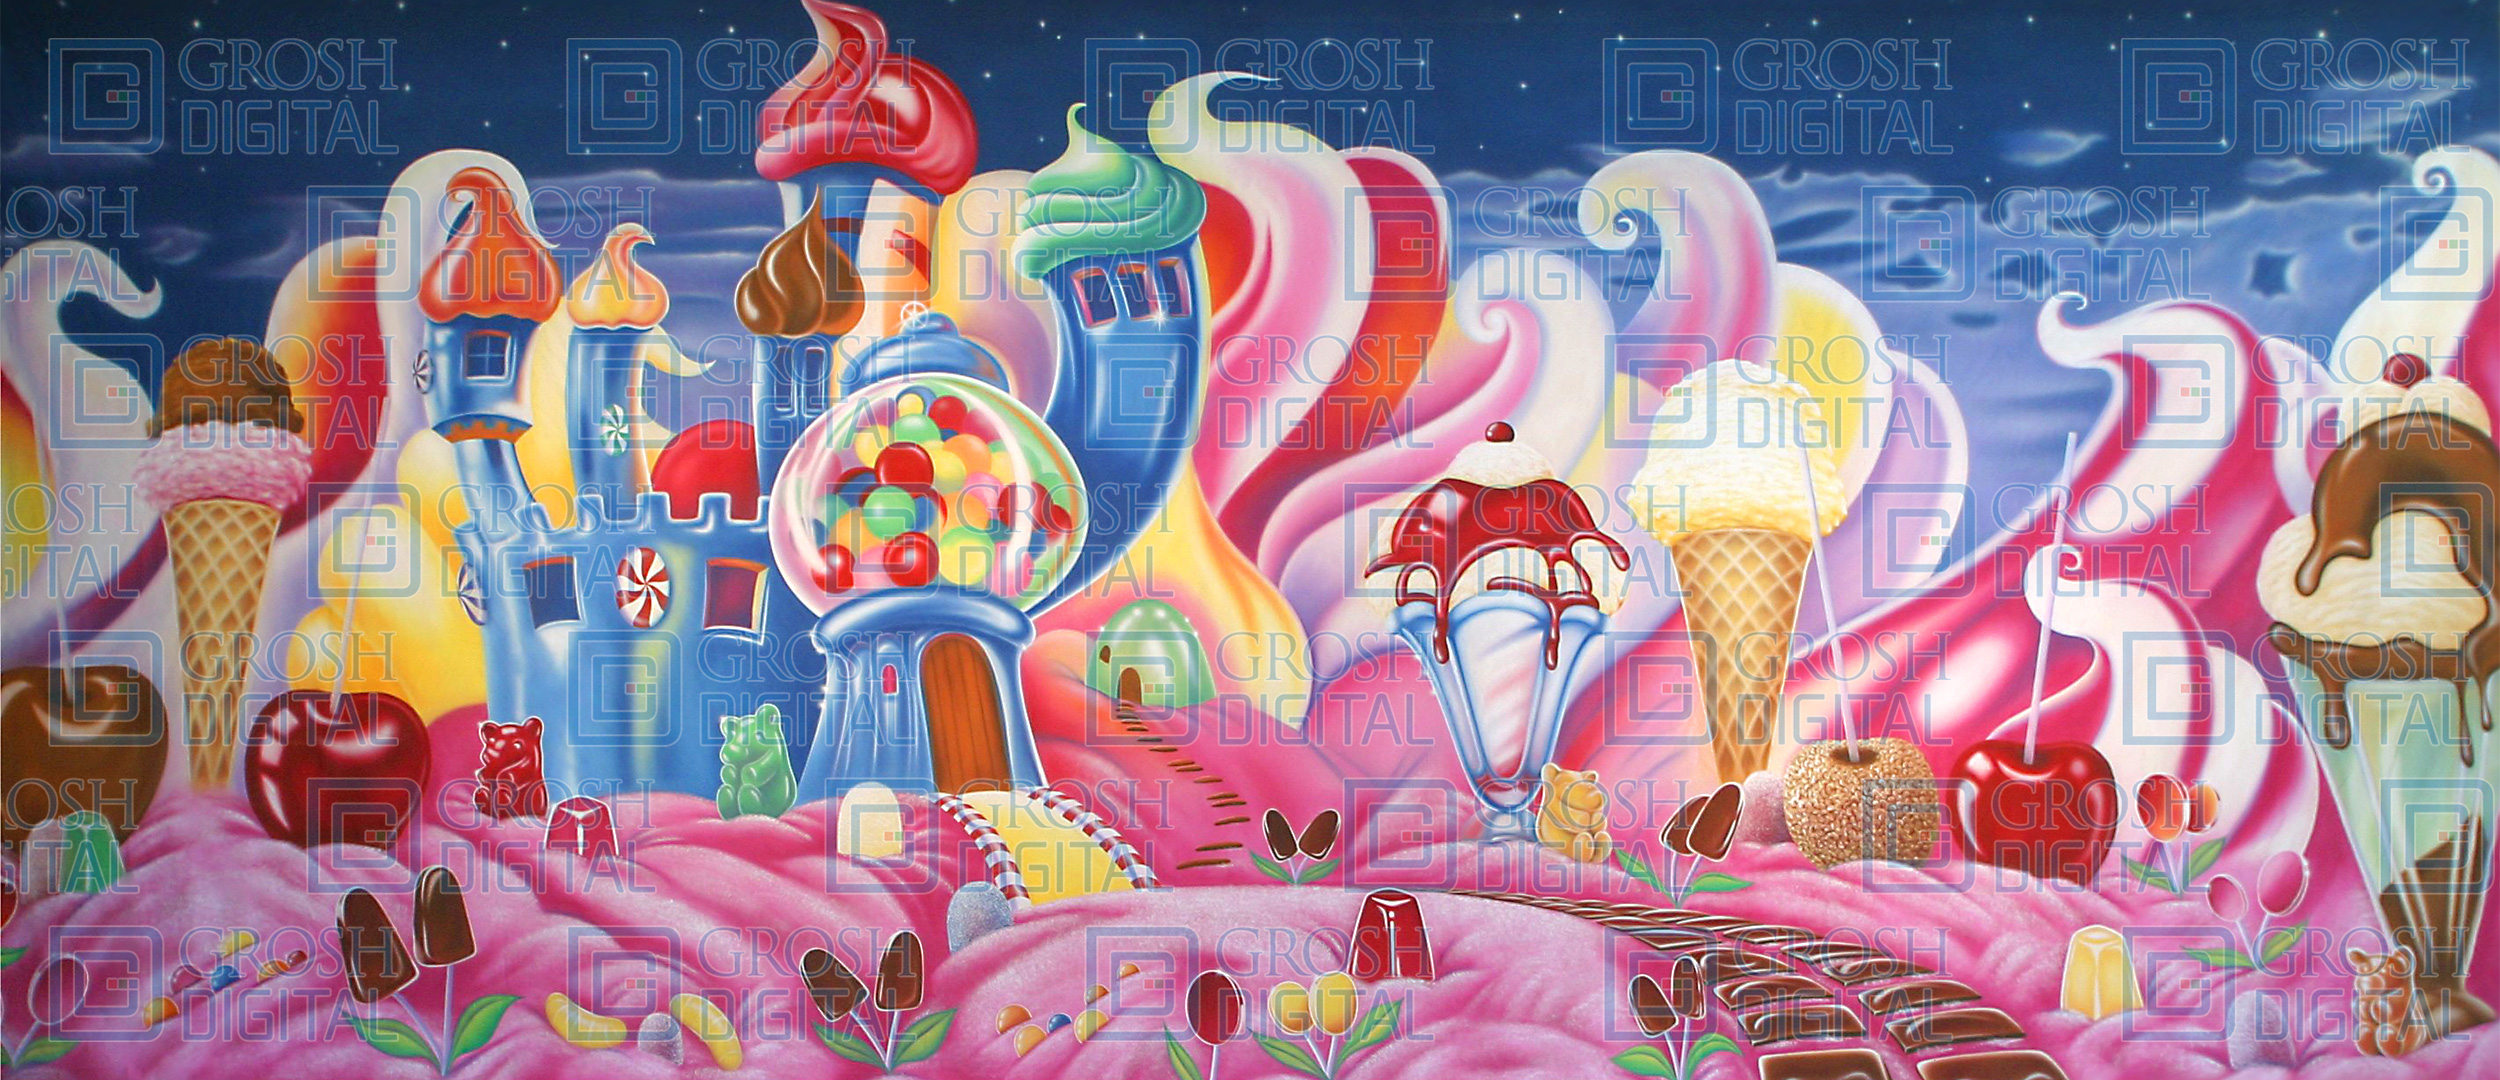 Candyland Projected Backdrop for Charlie and the Chocolate Factory, Land of the Sweets, Nutcracker